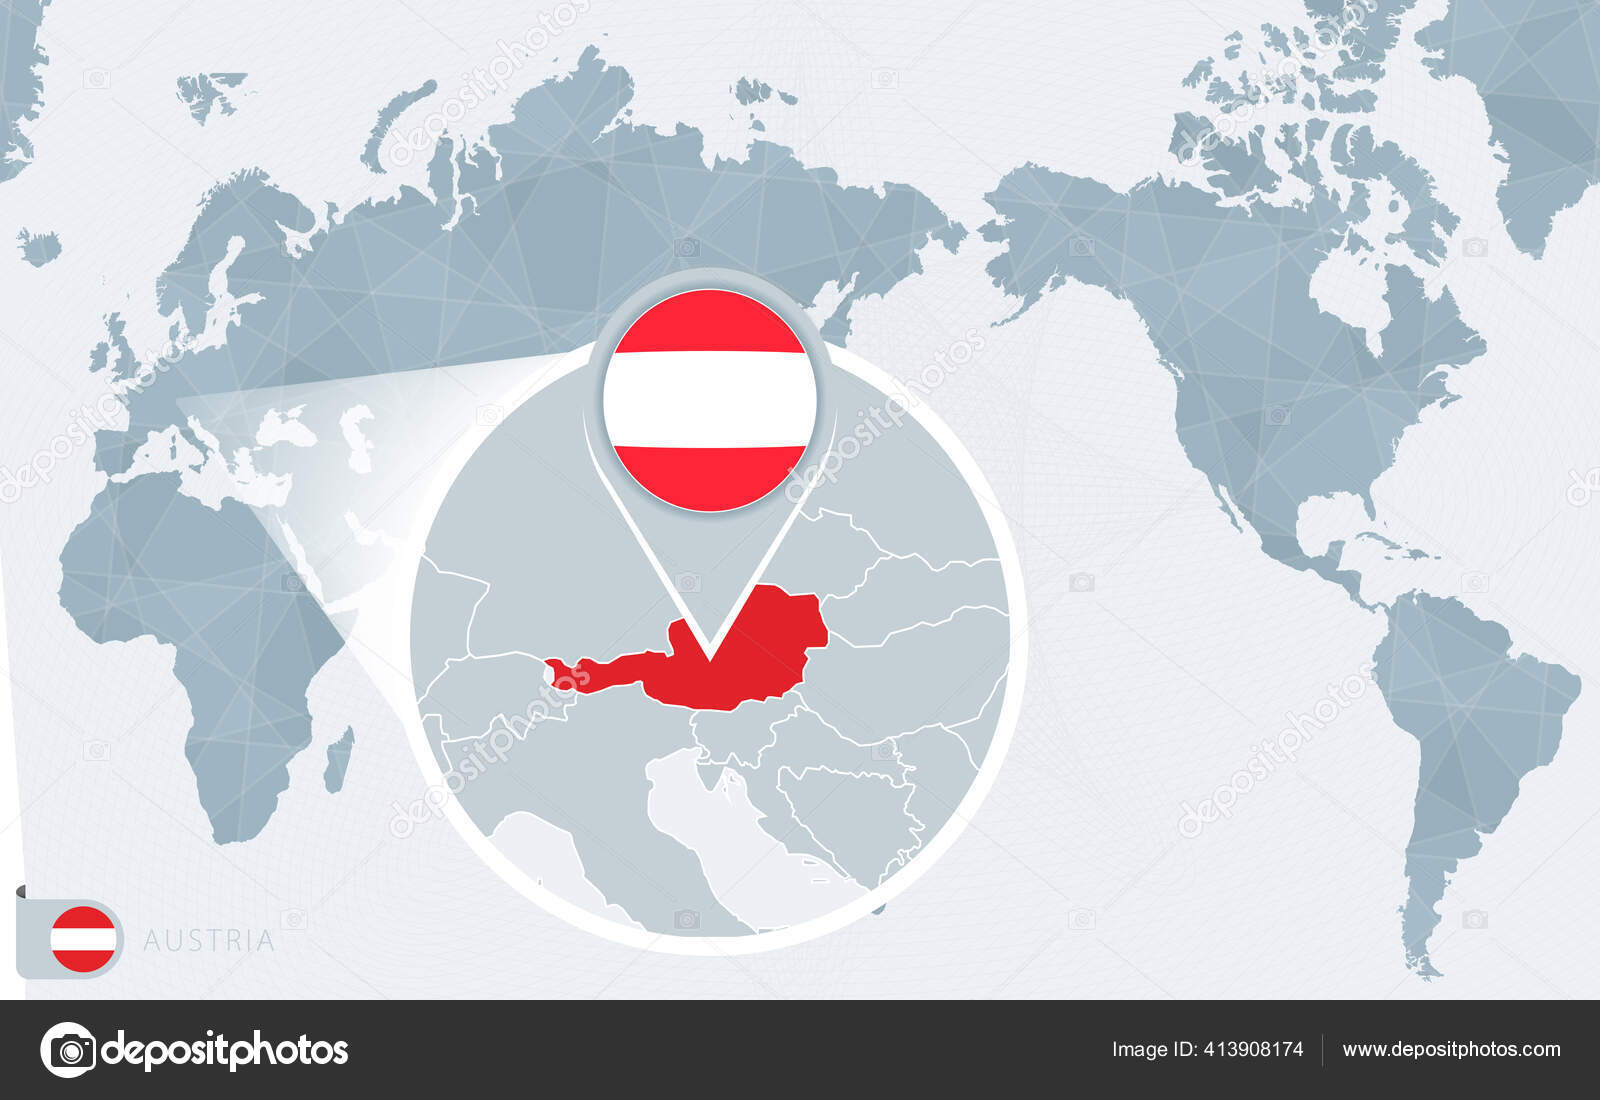 Image of: Pacific Centered World Map Magnified Austria Ingles Bandera Mapa Austria Archivo Imagenes Vectoriales C Boldg 413908174